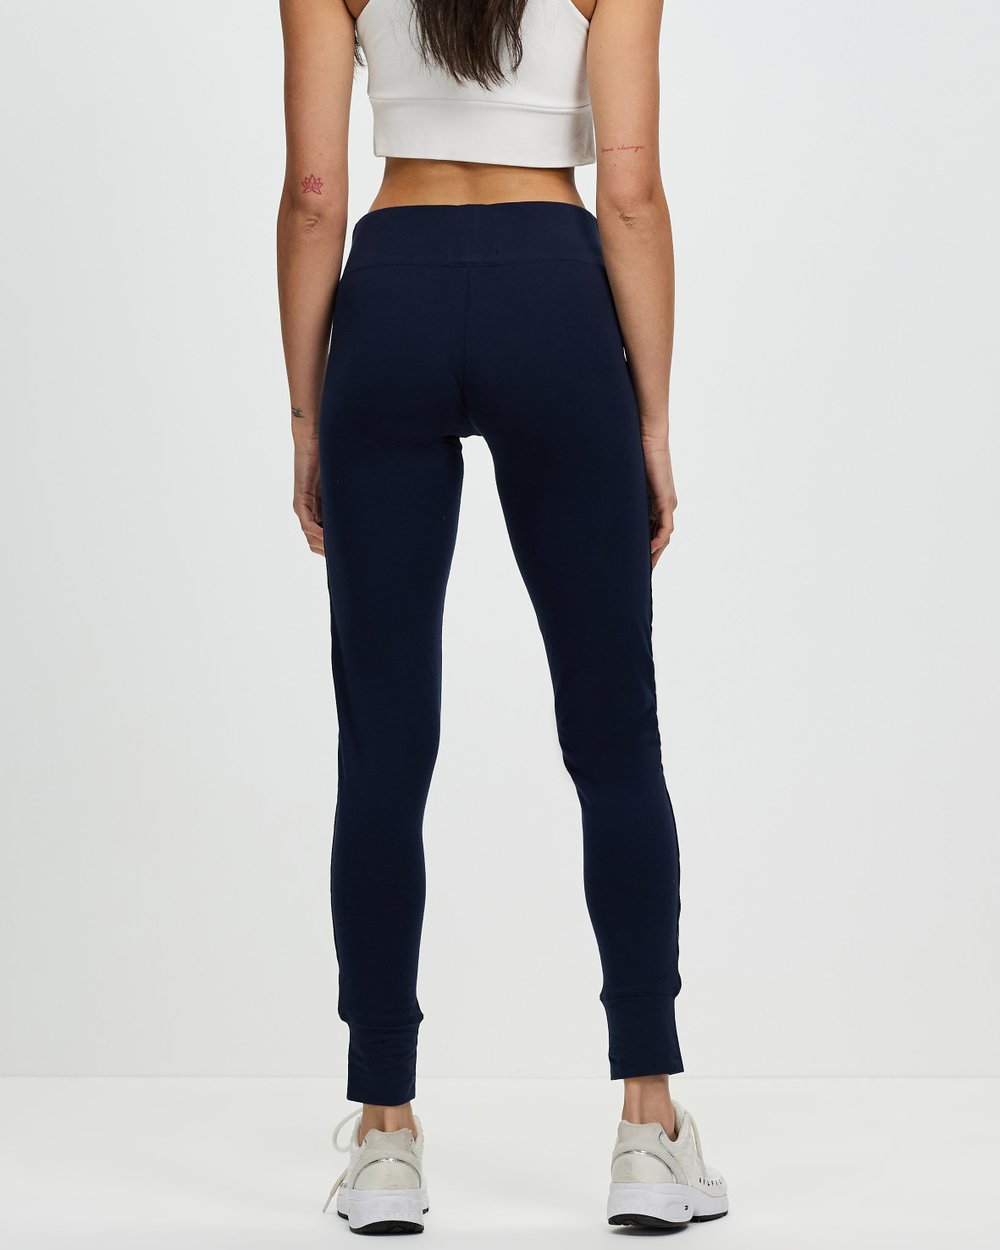 9a2f57fd983b6 Nostalgia Leggings by Tommy Hilfiger Online | THE ICONIC | Australia